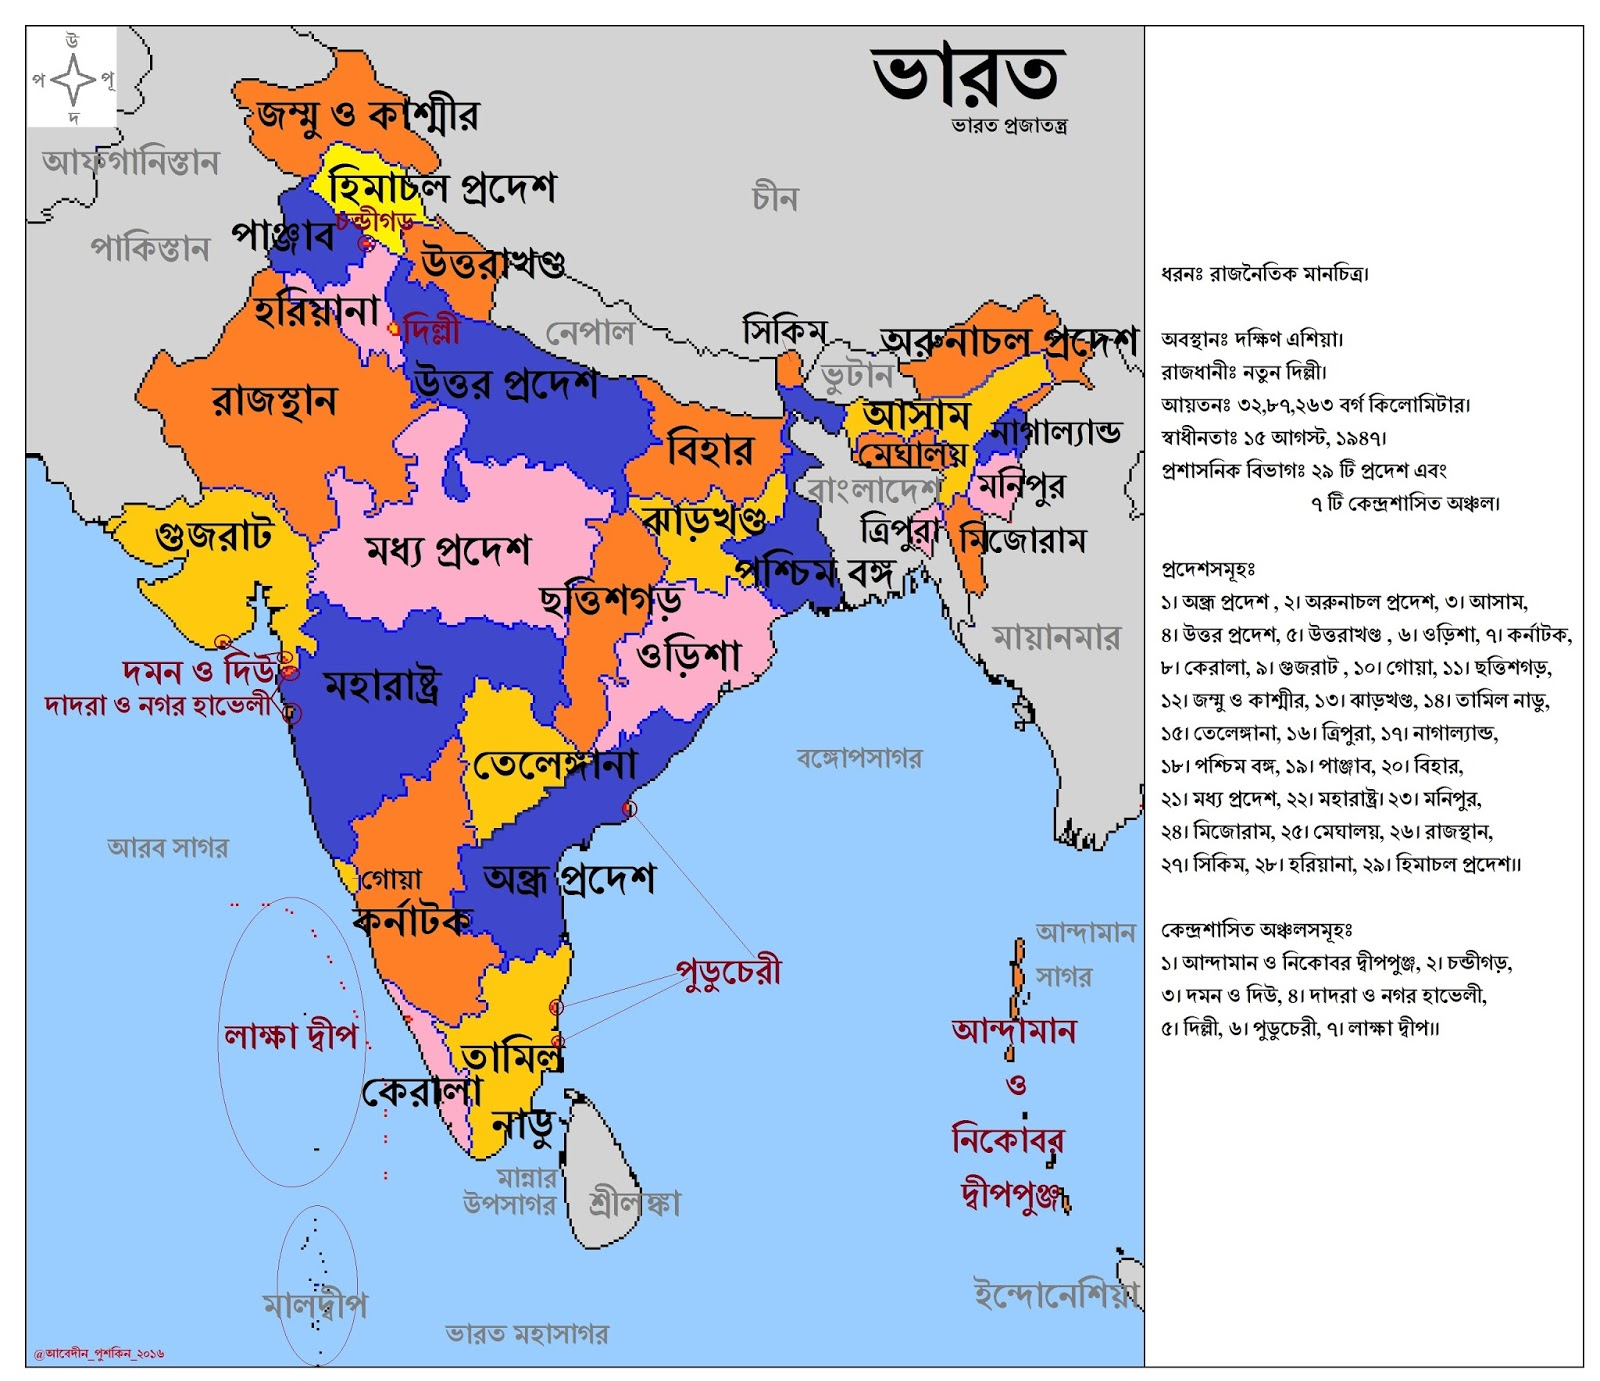 HSC Geography 8th week Assignment Answer 2022